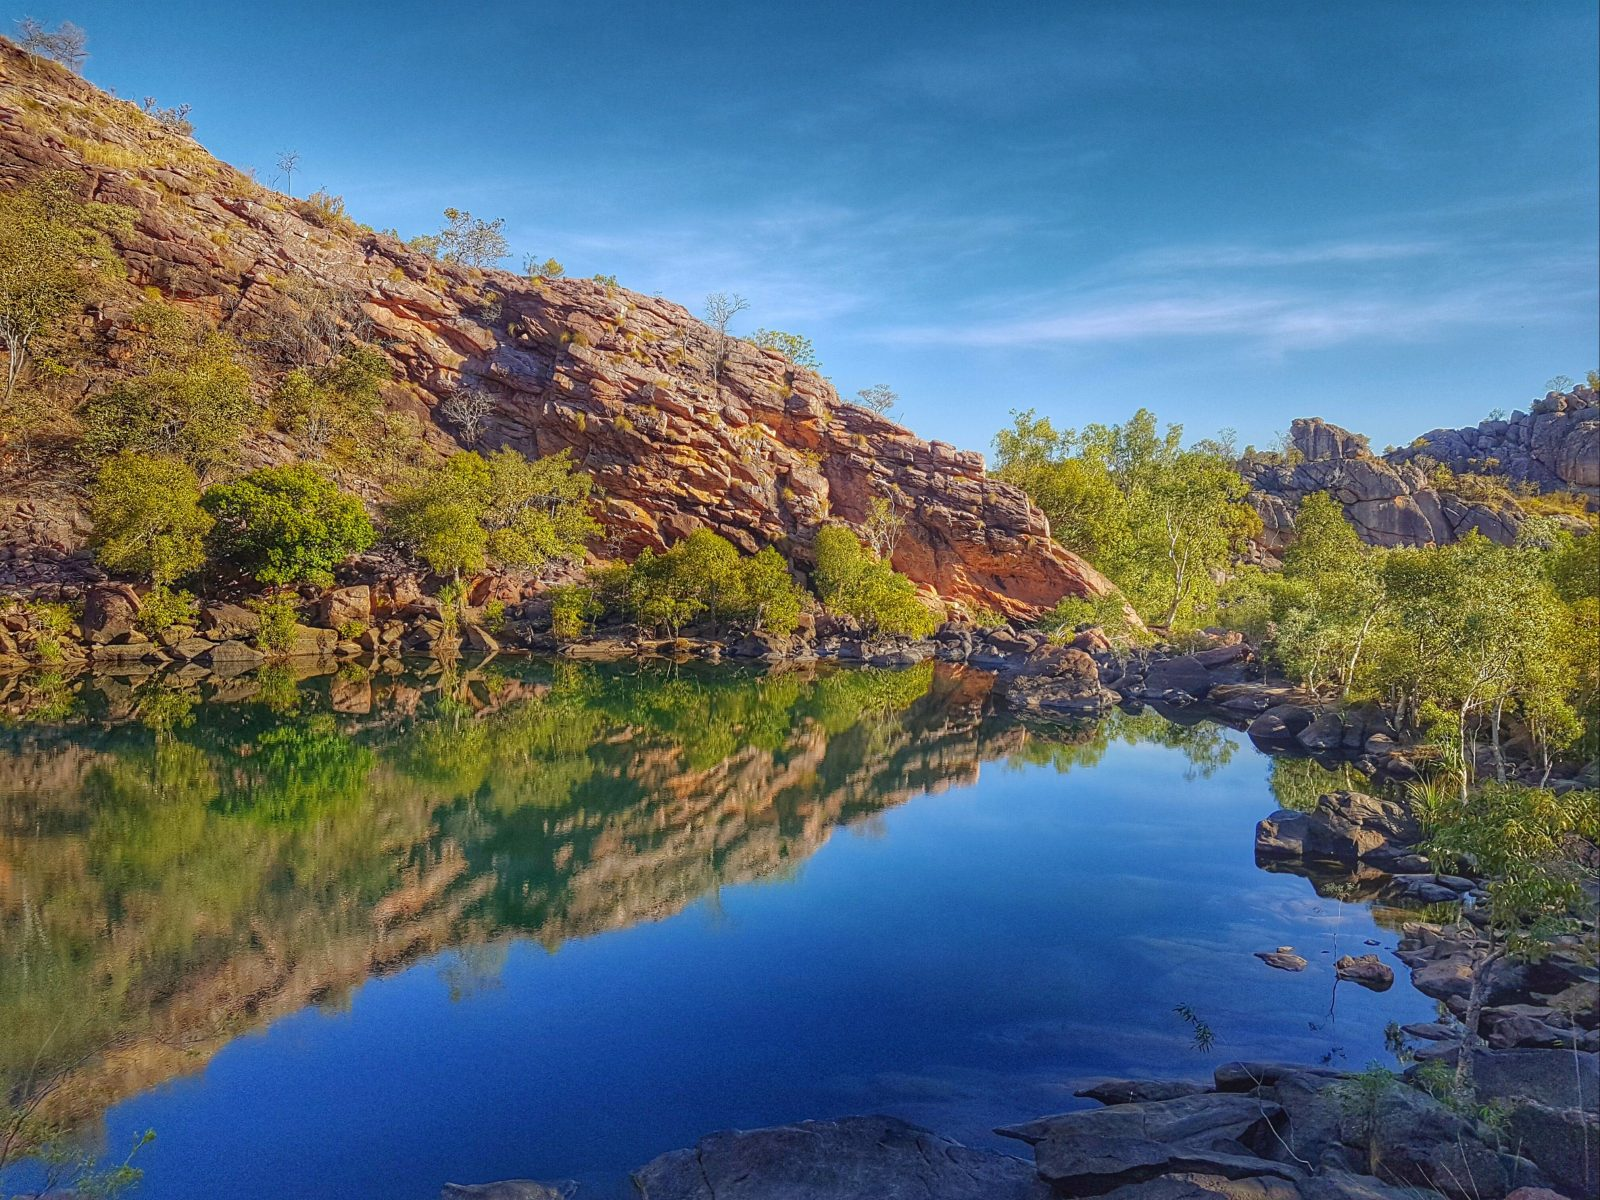 Jarrangbarnmi/Koolpin Gorge, Kakadu National Park